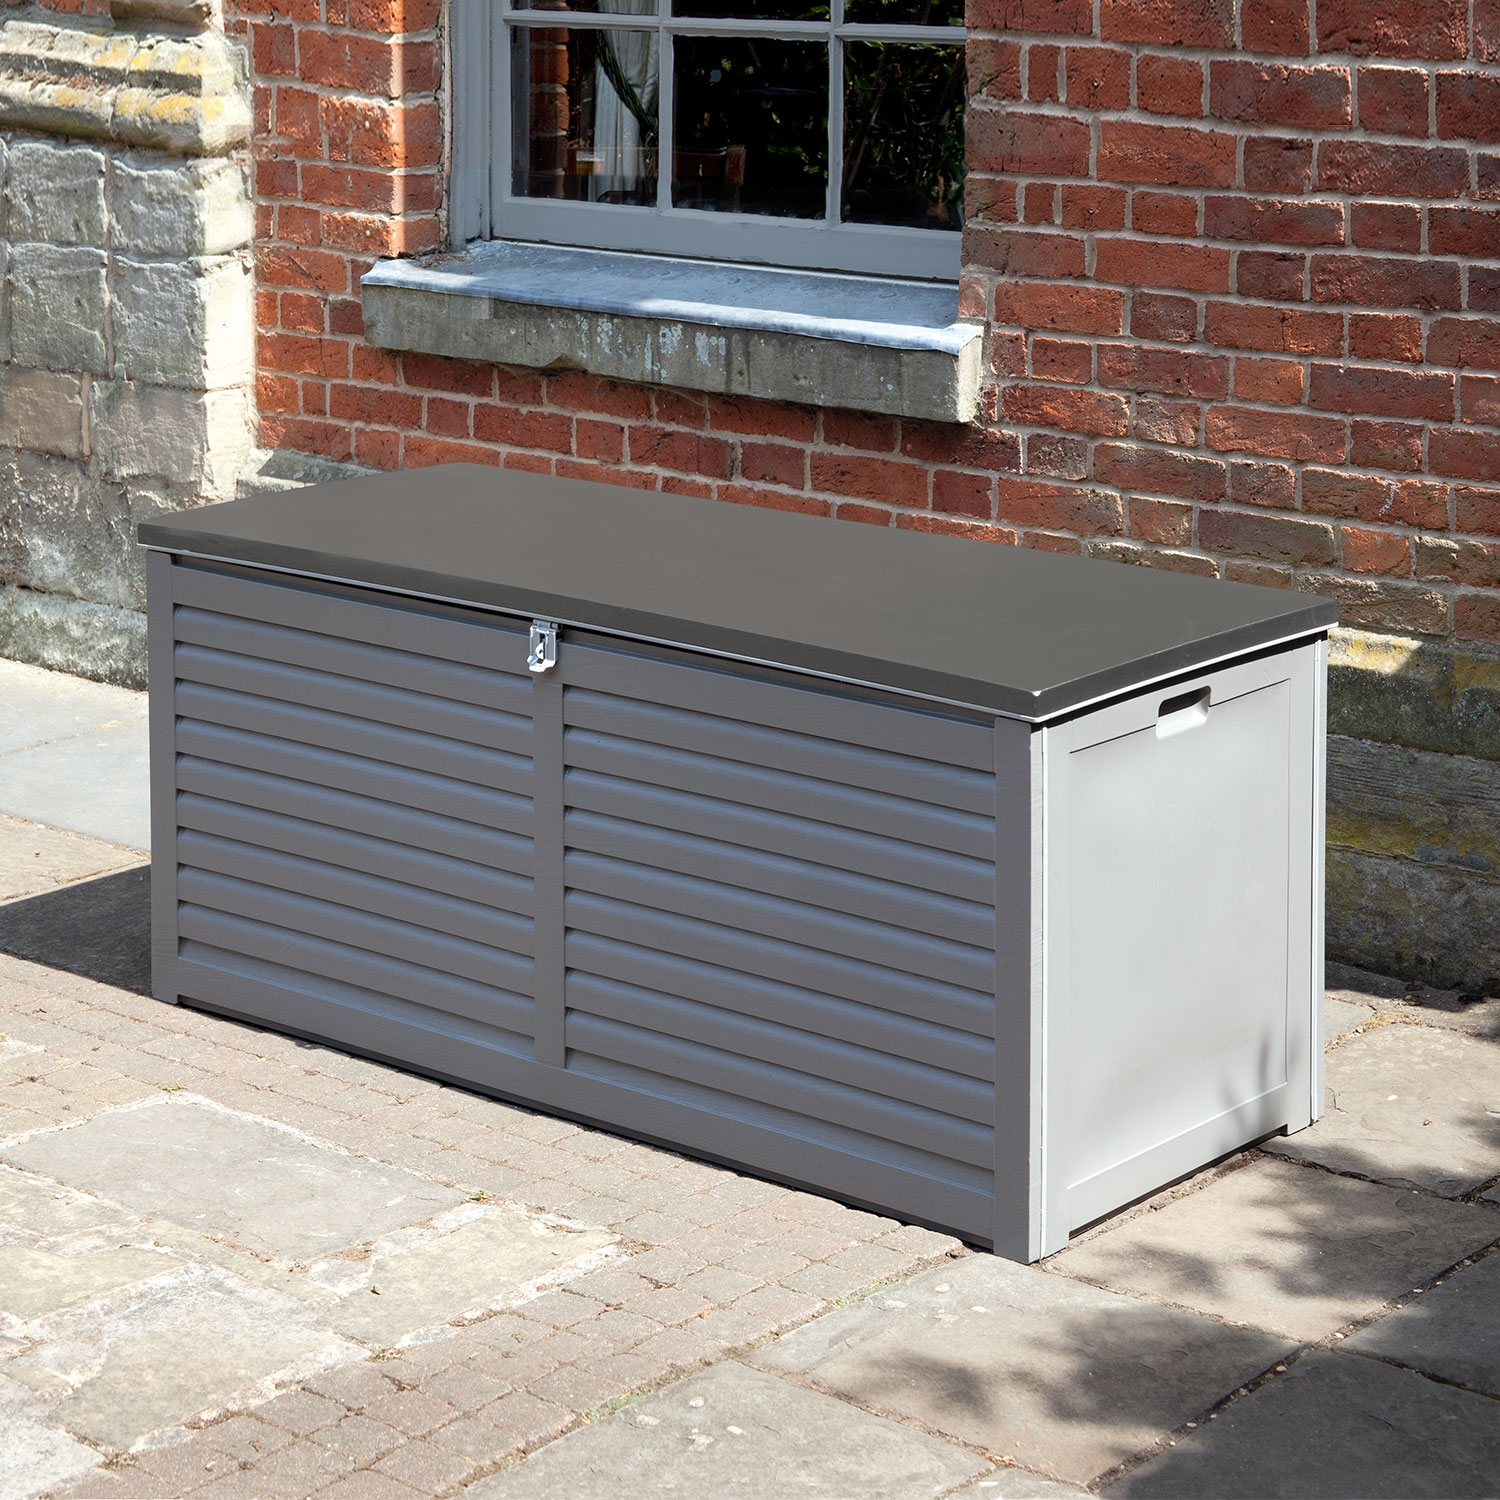 Image of Edmonton 490L PP Storage Box With 2 Gas Lifts